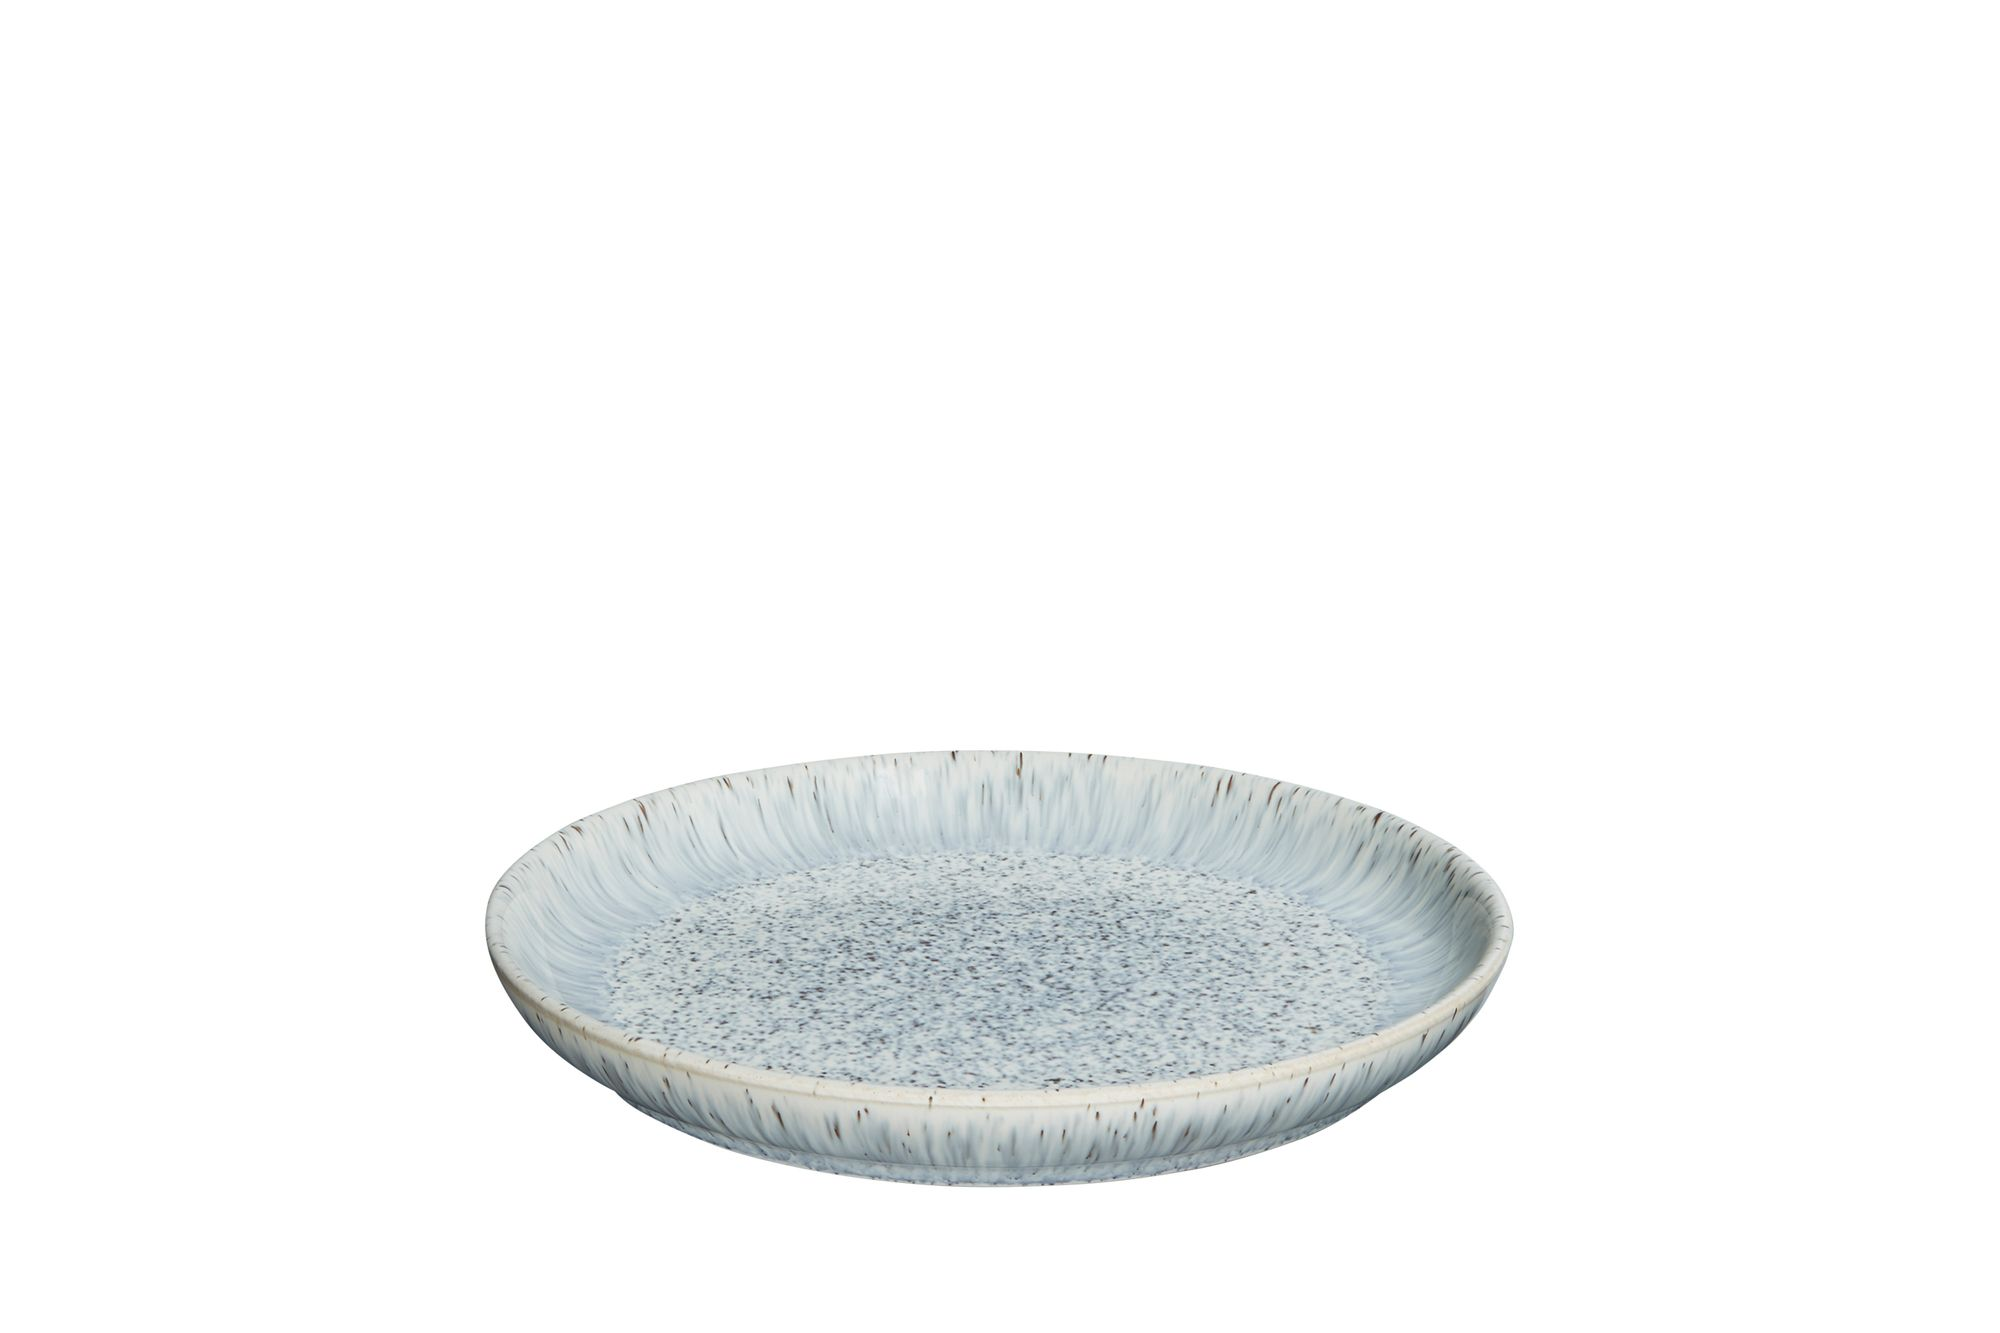 Denby Halo Side Plate Coupe - Speckle 21cm thumb 2